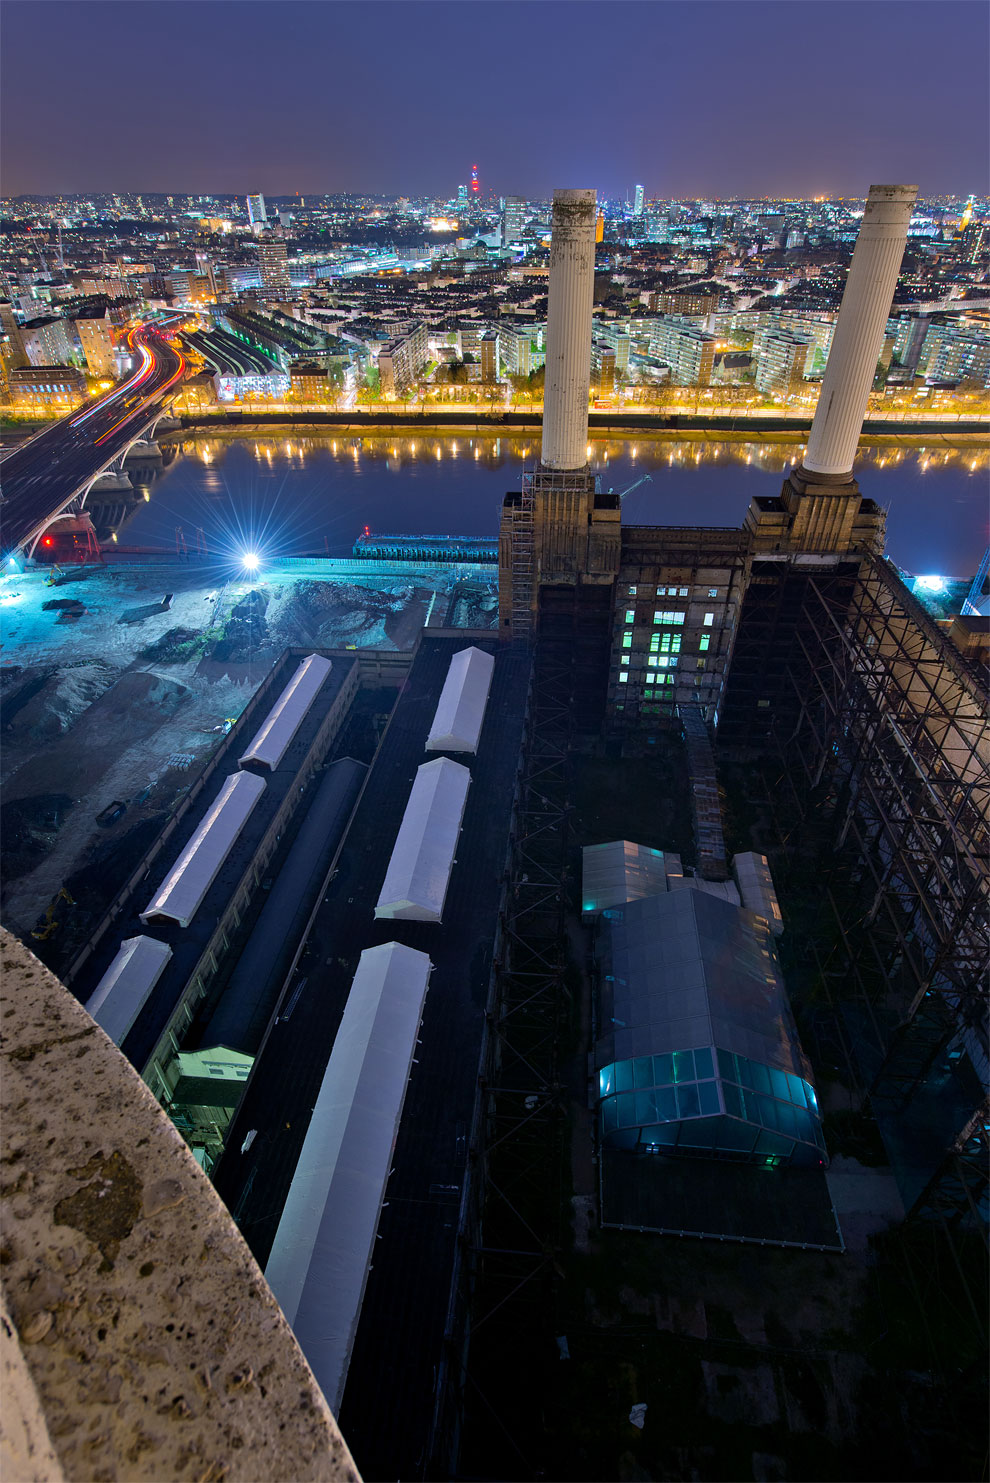 Battersea Power Station. The view from the top of one of the chimneys, prior to its redvelopment. (Photo by Marc Explo)